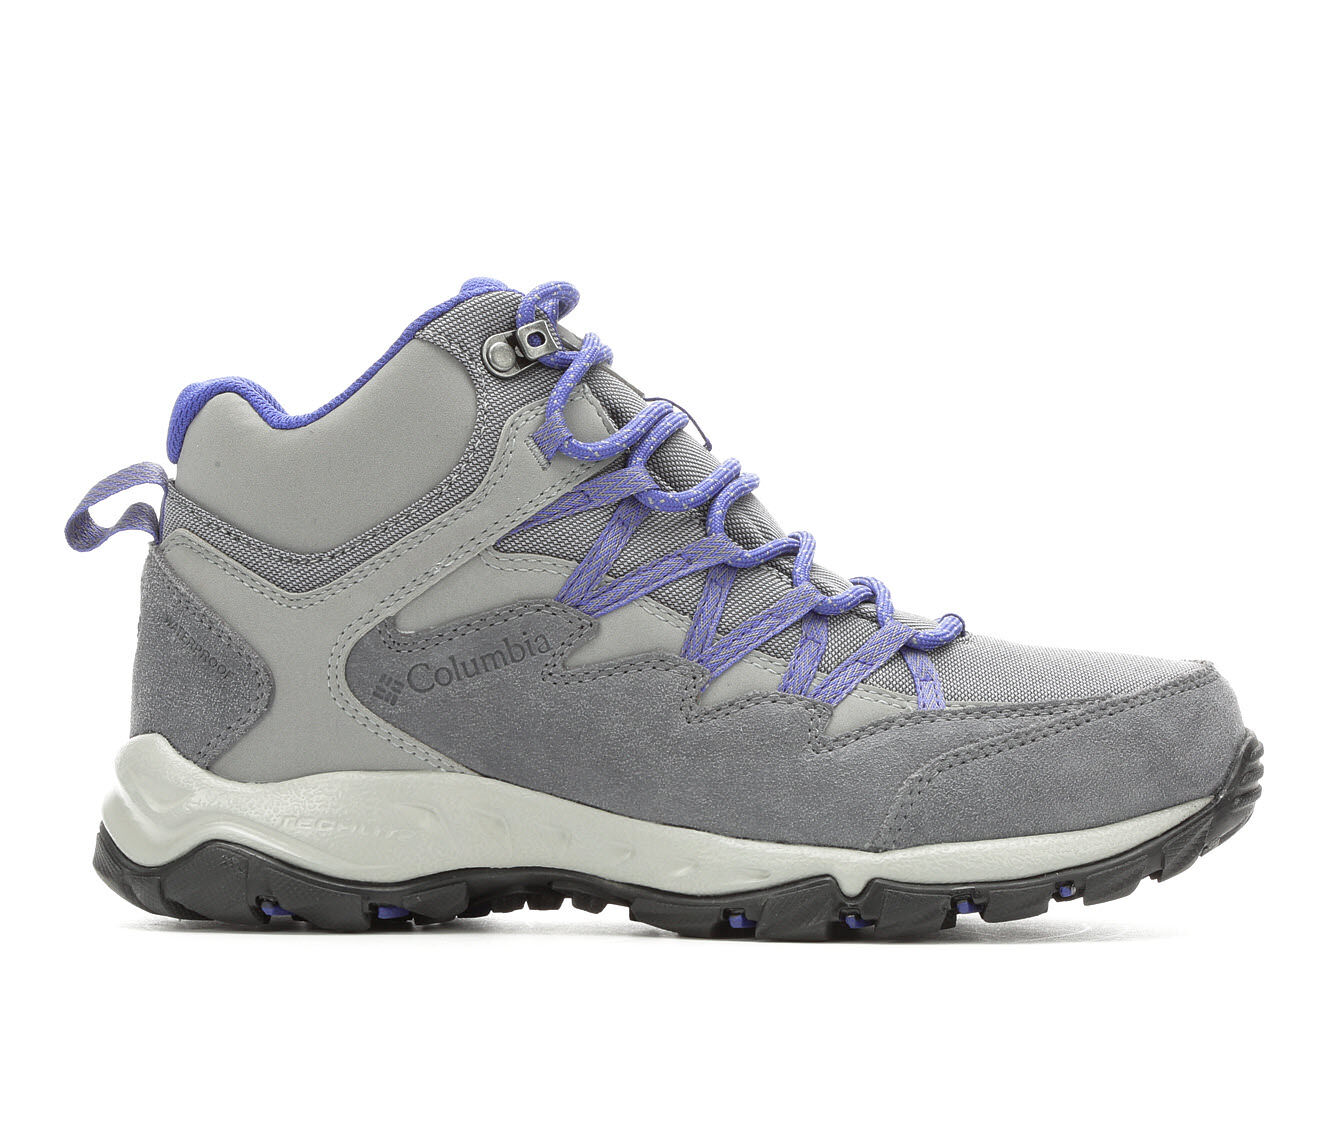 Women's Columbia Wahkeena MID WP Hiking Boots Steel Grey/Blue